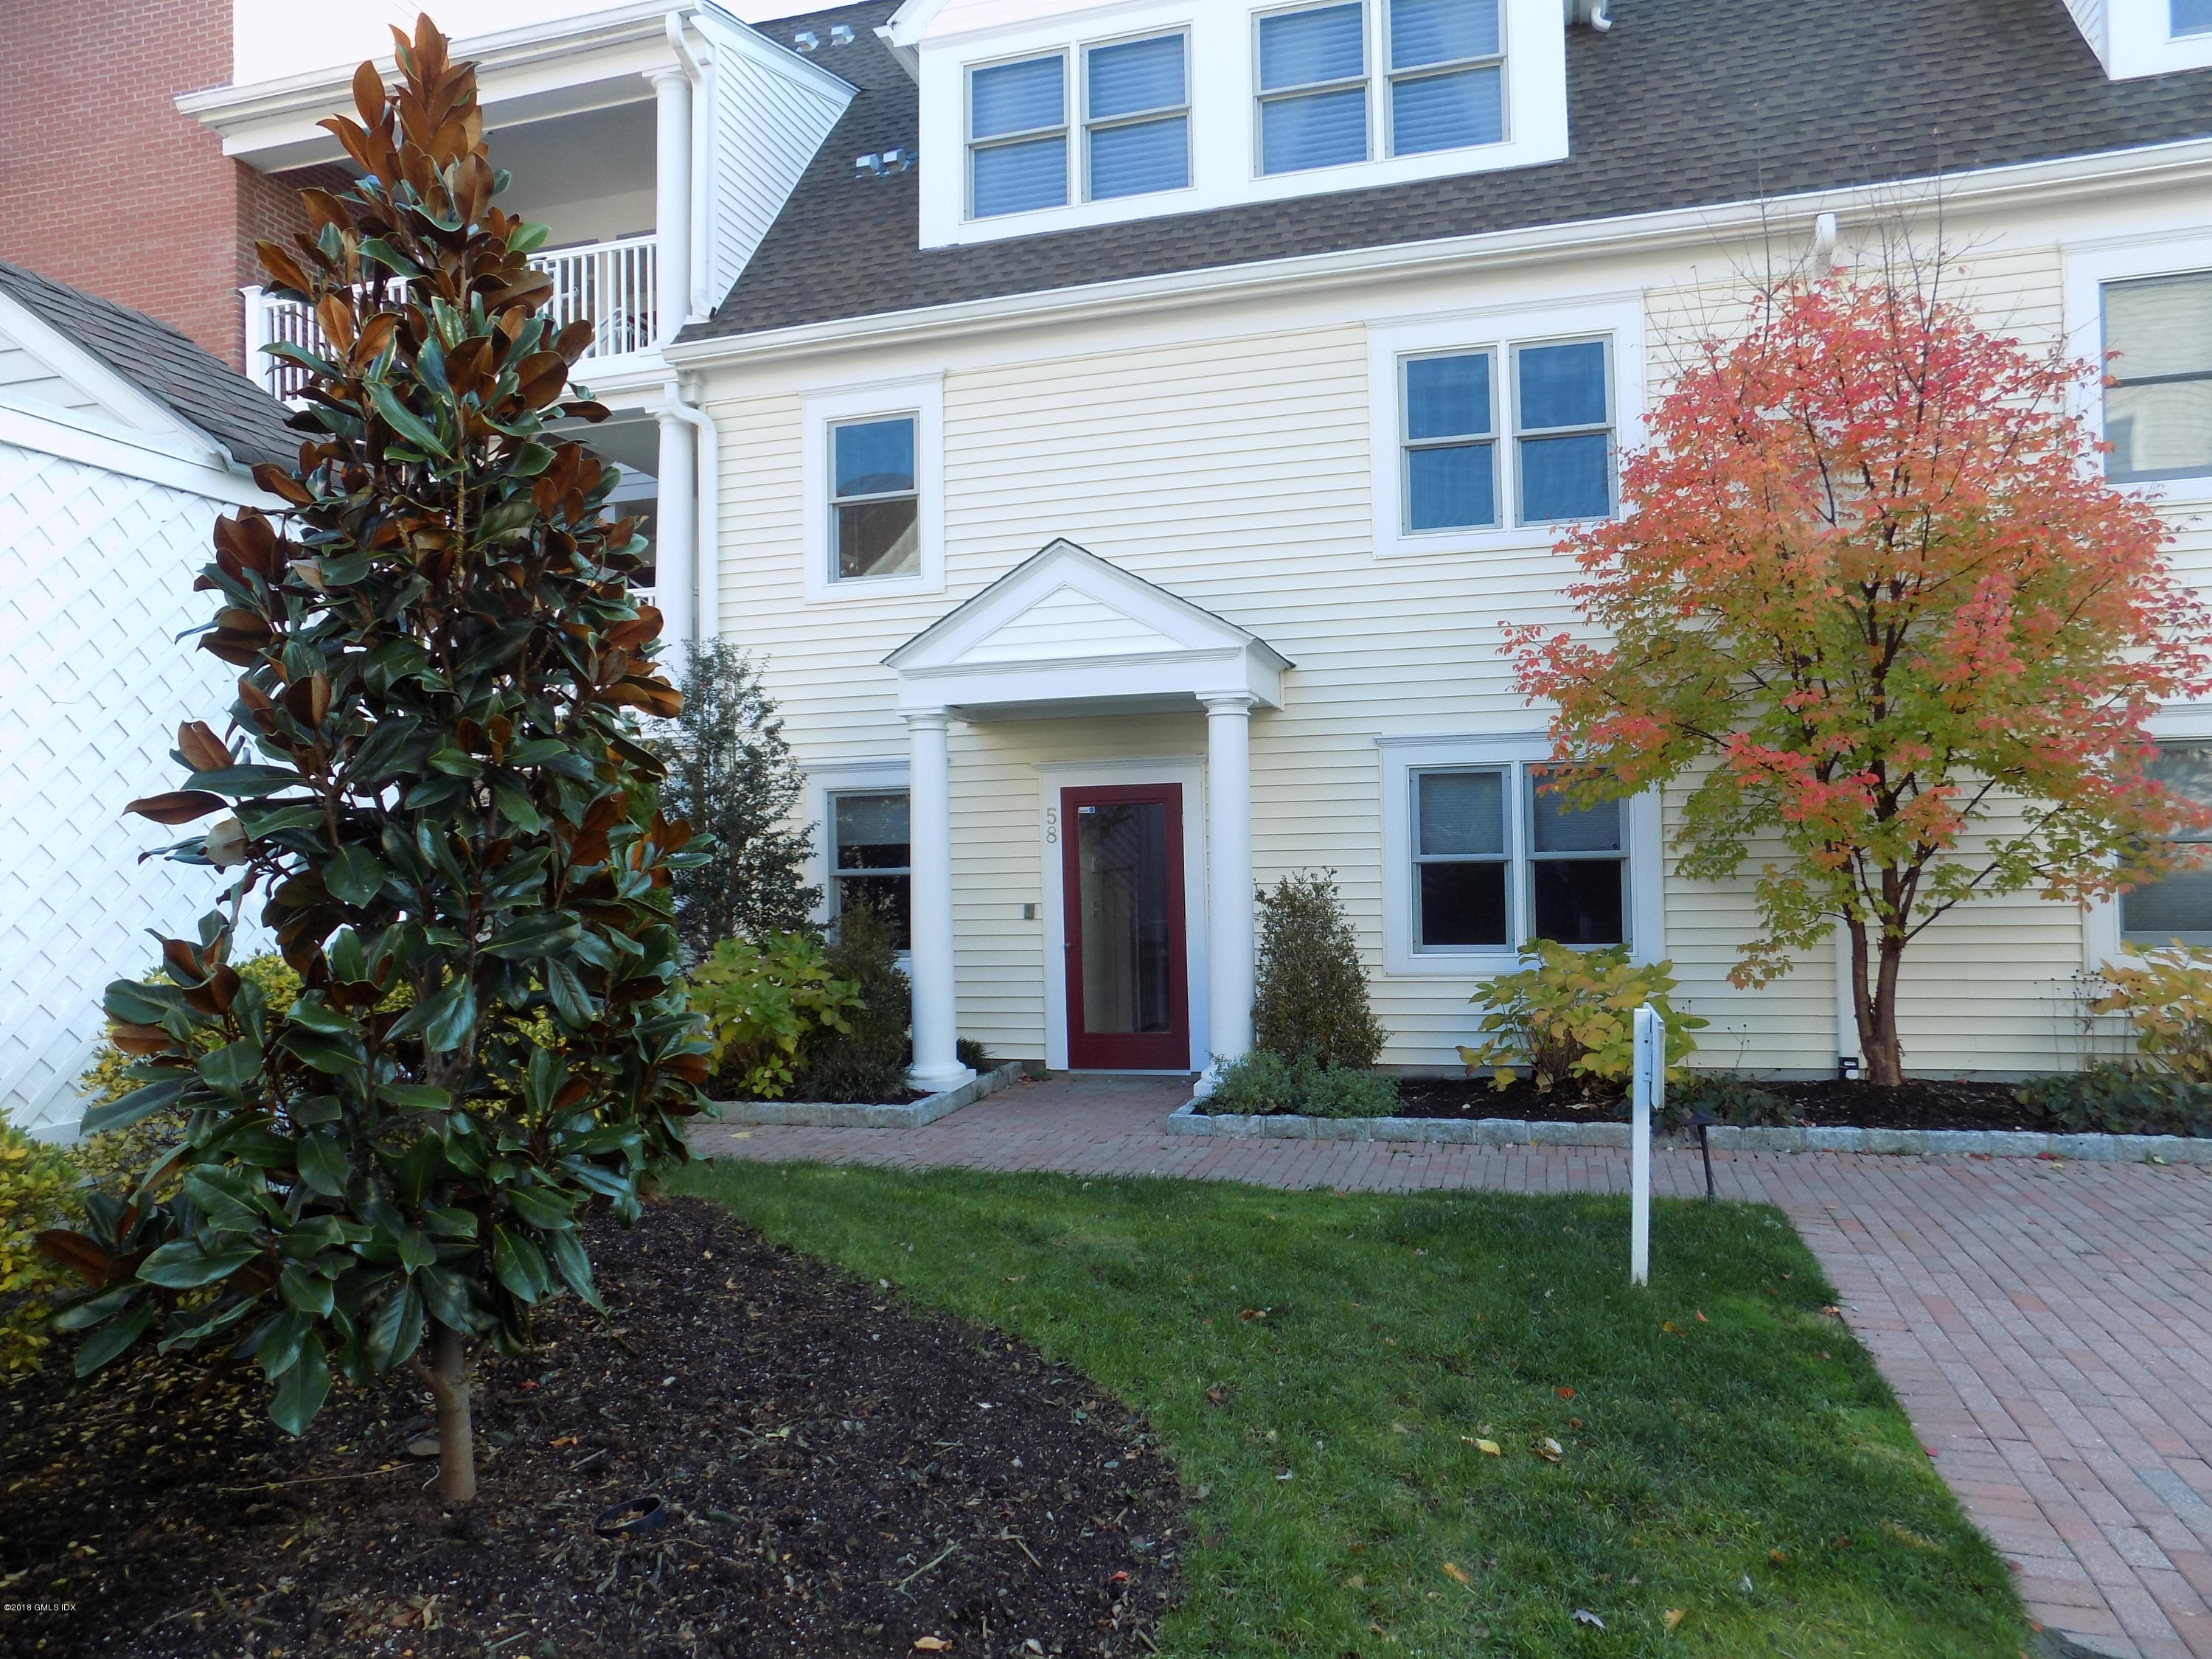 51 Forest Avenue,Old Greenwich,Connecticut 06870,2 Bedrooms Bedrooms,2 BathroomsBathrooms,Condominium,Forest,105065